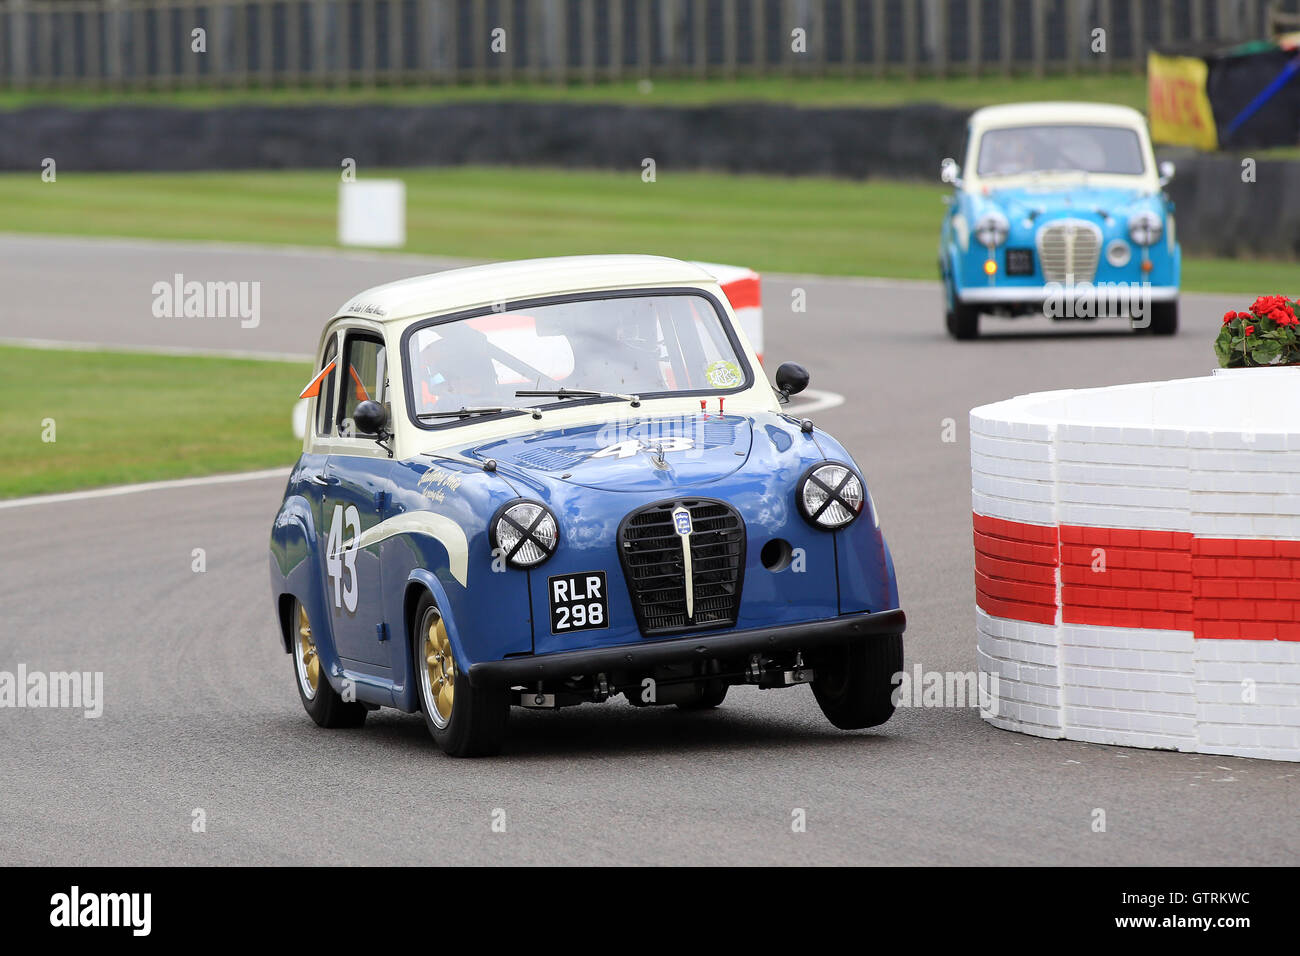 Chichester, UK. 09. Sep, 2016.  Nicolas Minassian in Austin A35 - St Mary's Trophy.  Das Goodwood Revival ist Stockbild